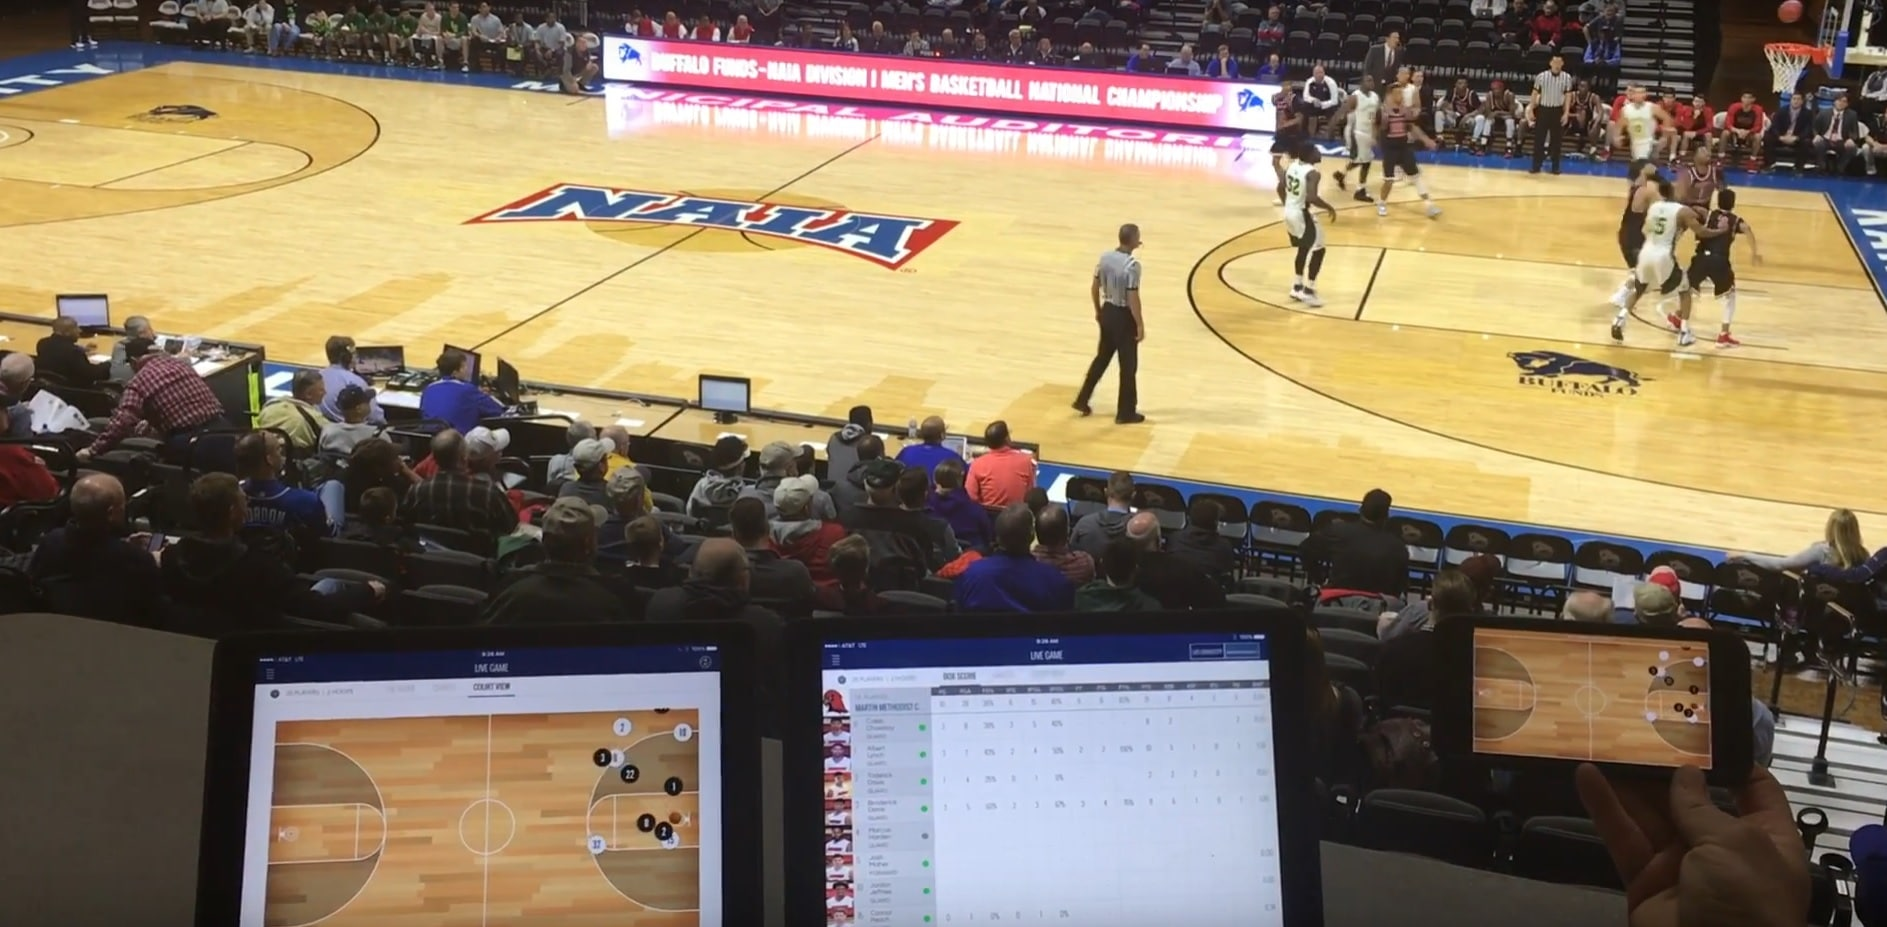 shottracker brings real time stats to naia basketball tournament 2 - ShotTracker brings real time stats to NAIA basketball tournament